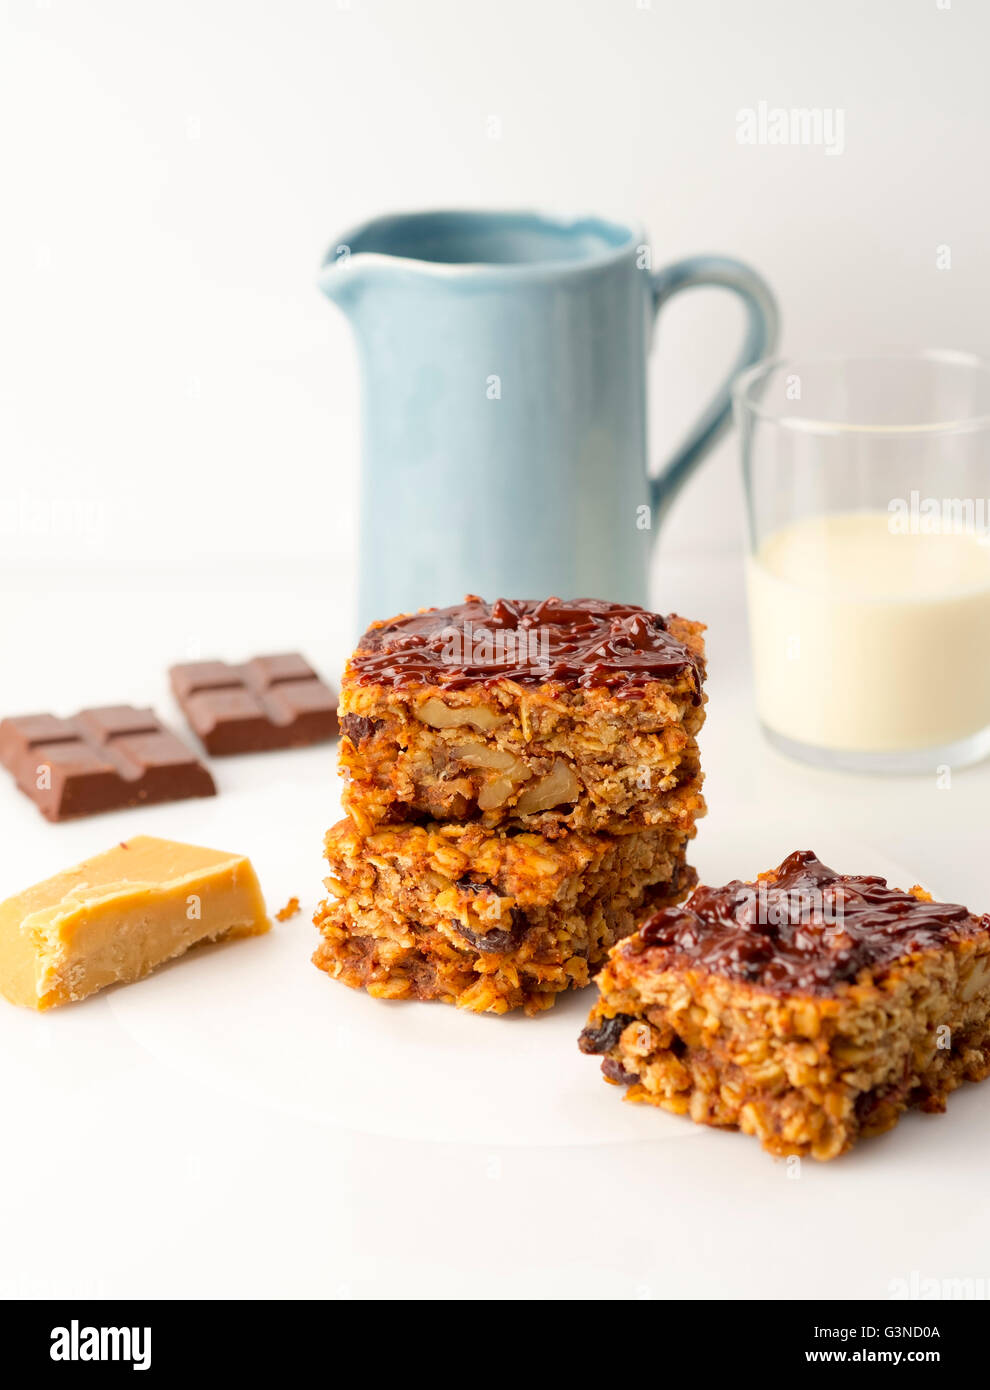 Granola nut bars - Stock Image